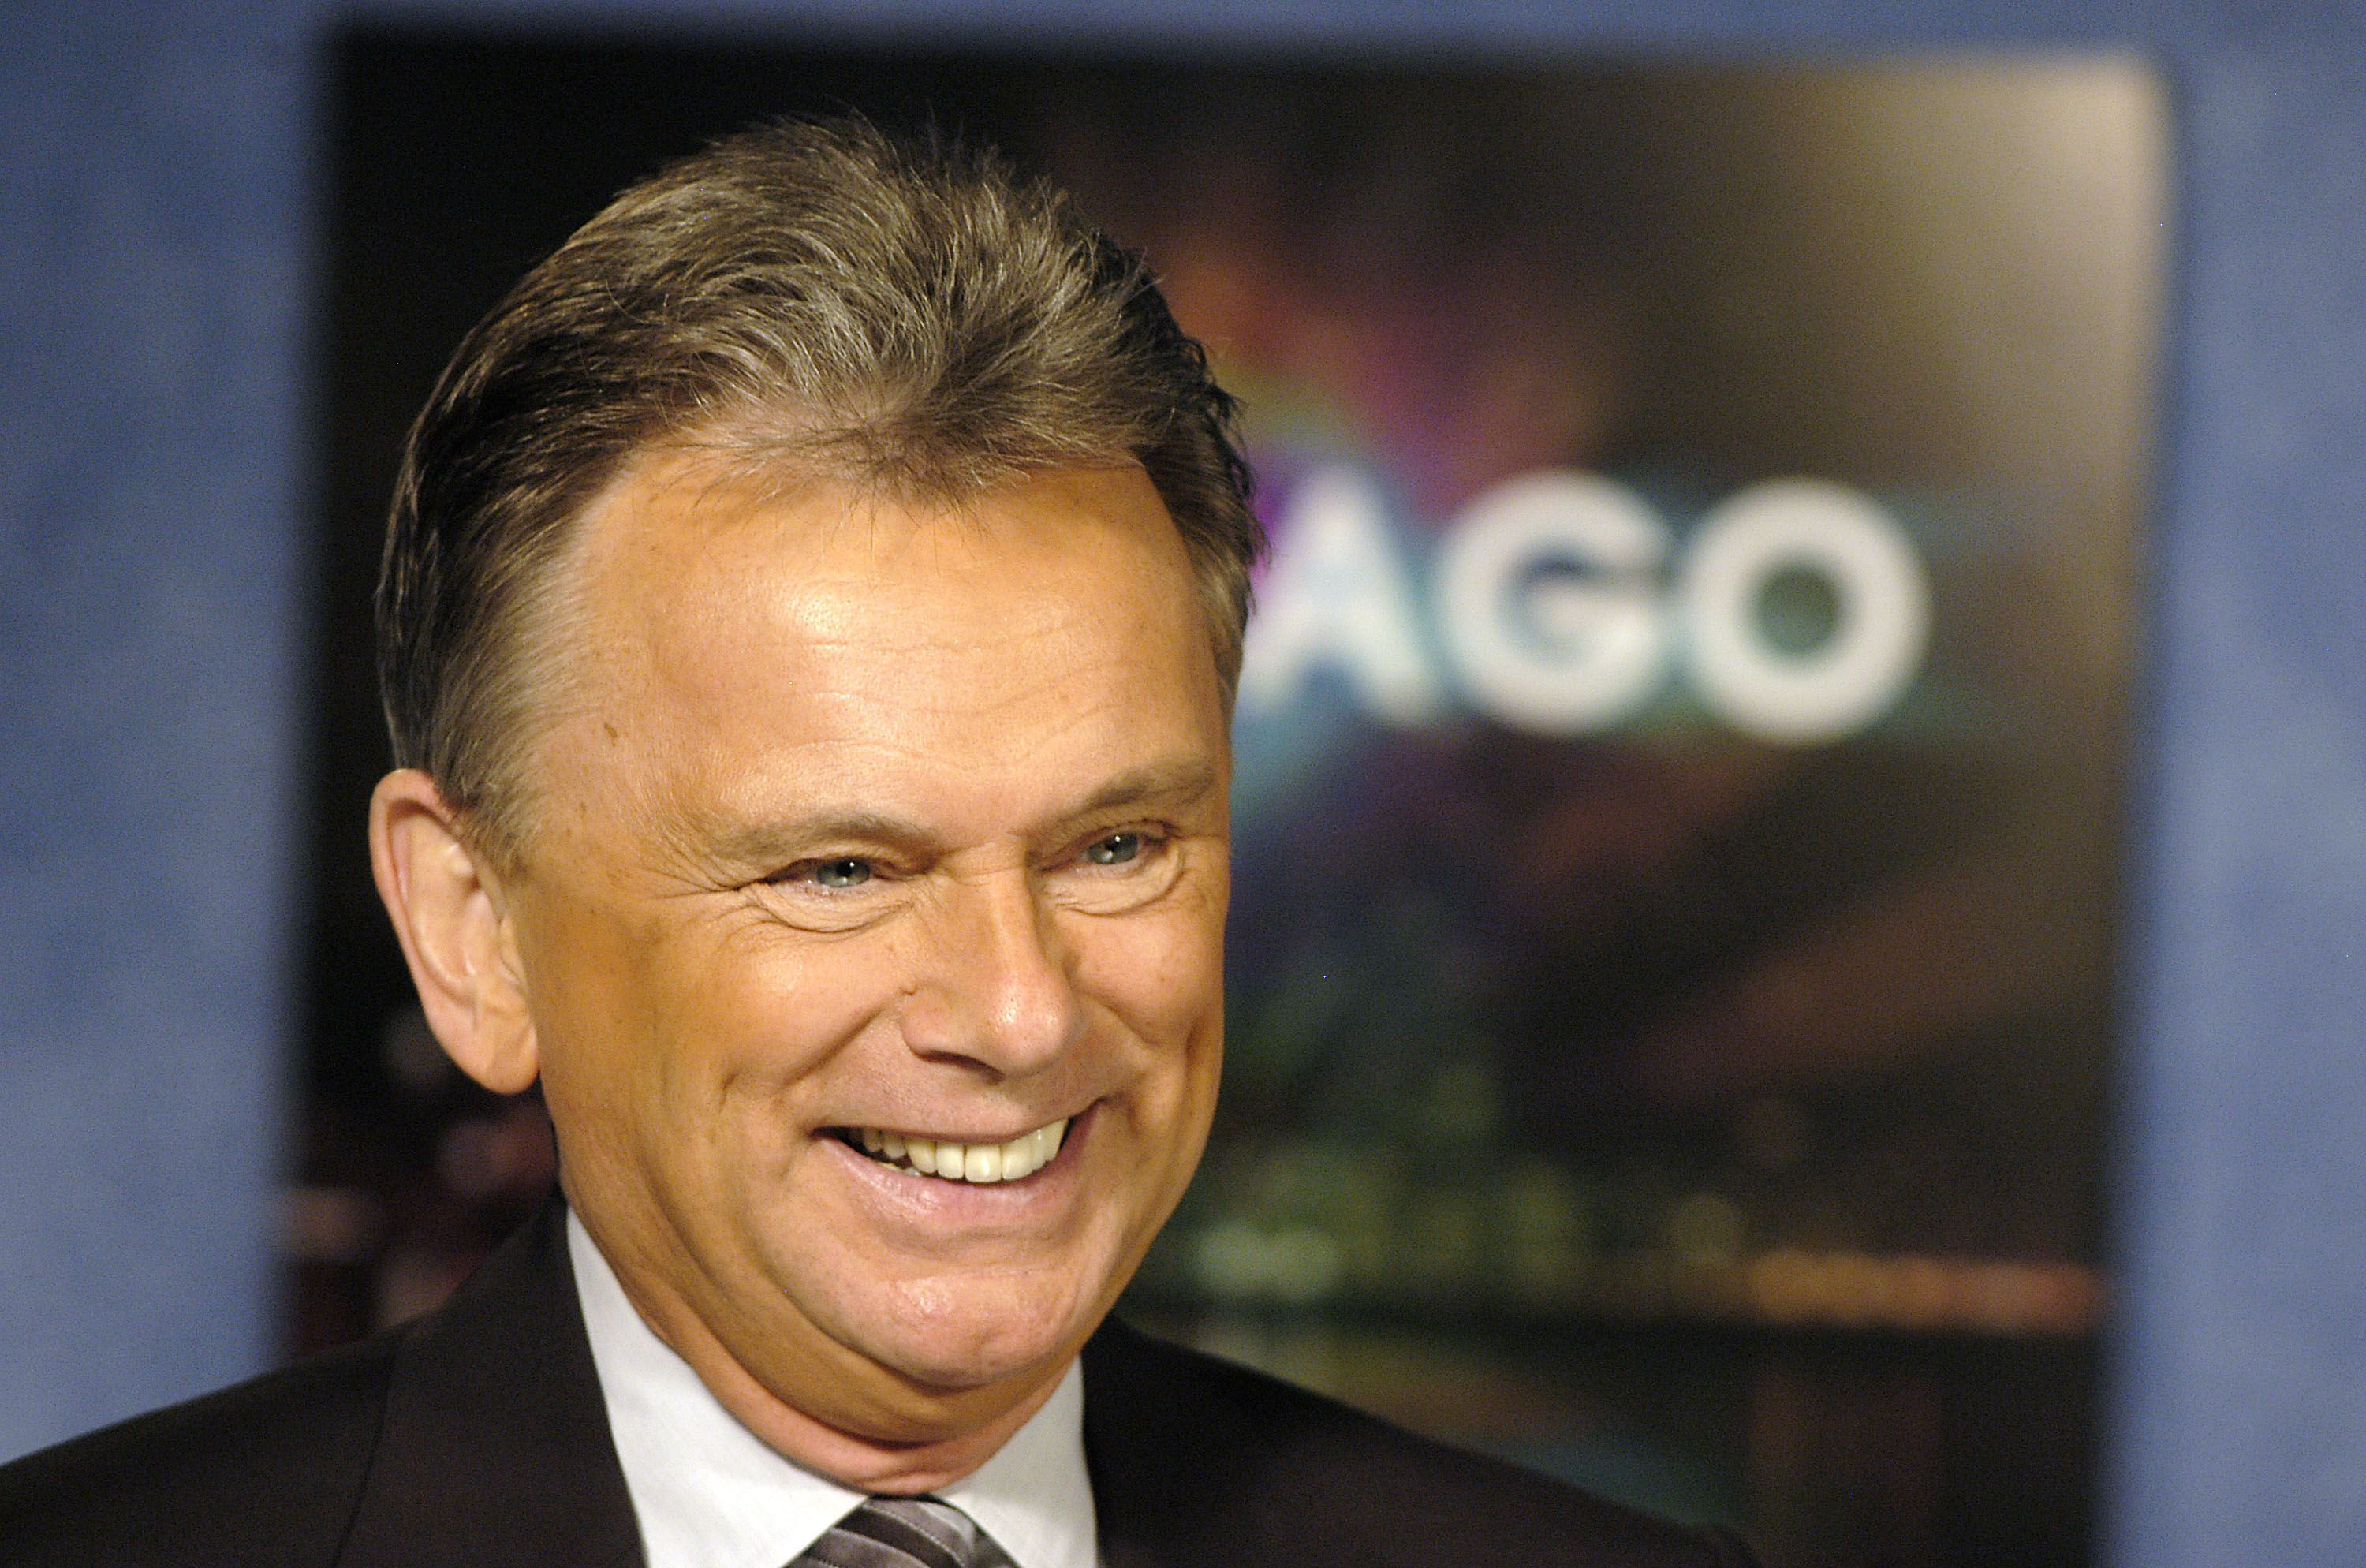 What Is Wheel of Fortune Host Pat Sajak's Net Worth?